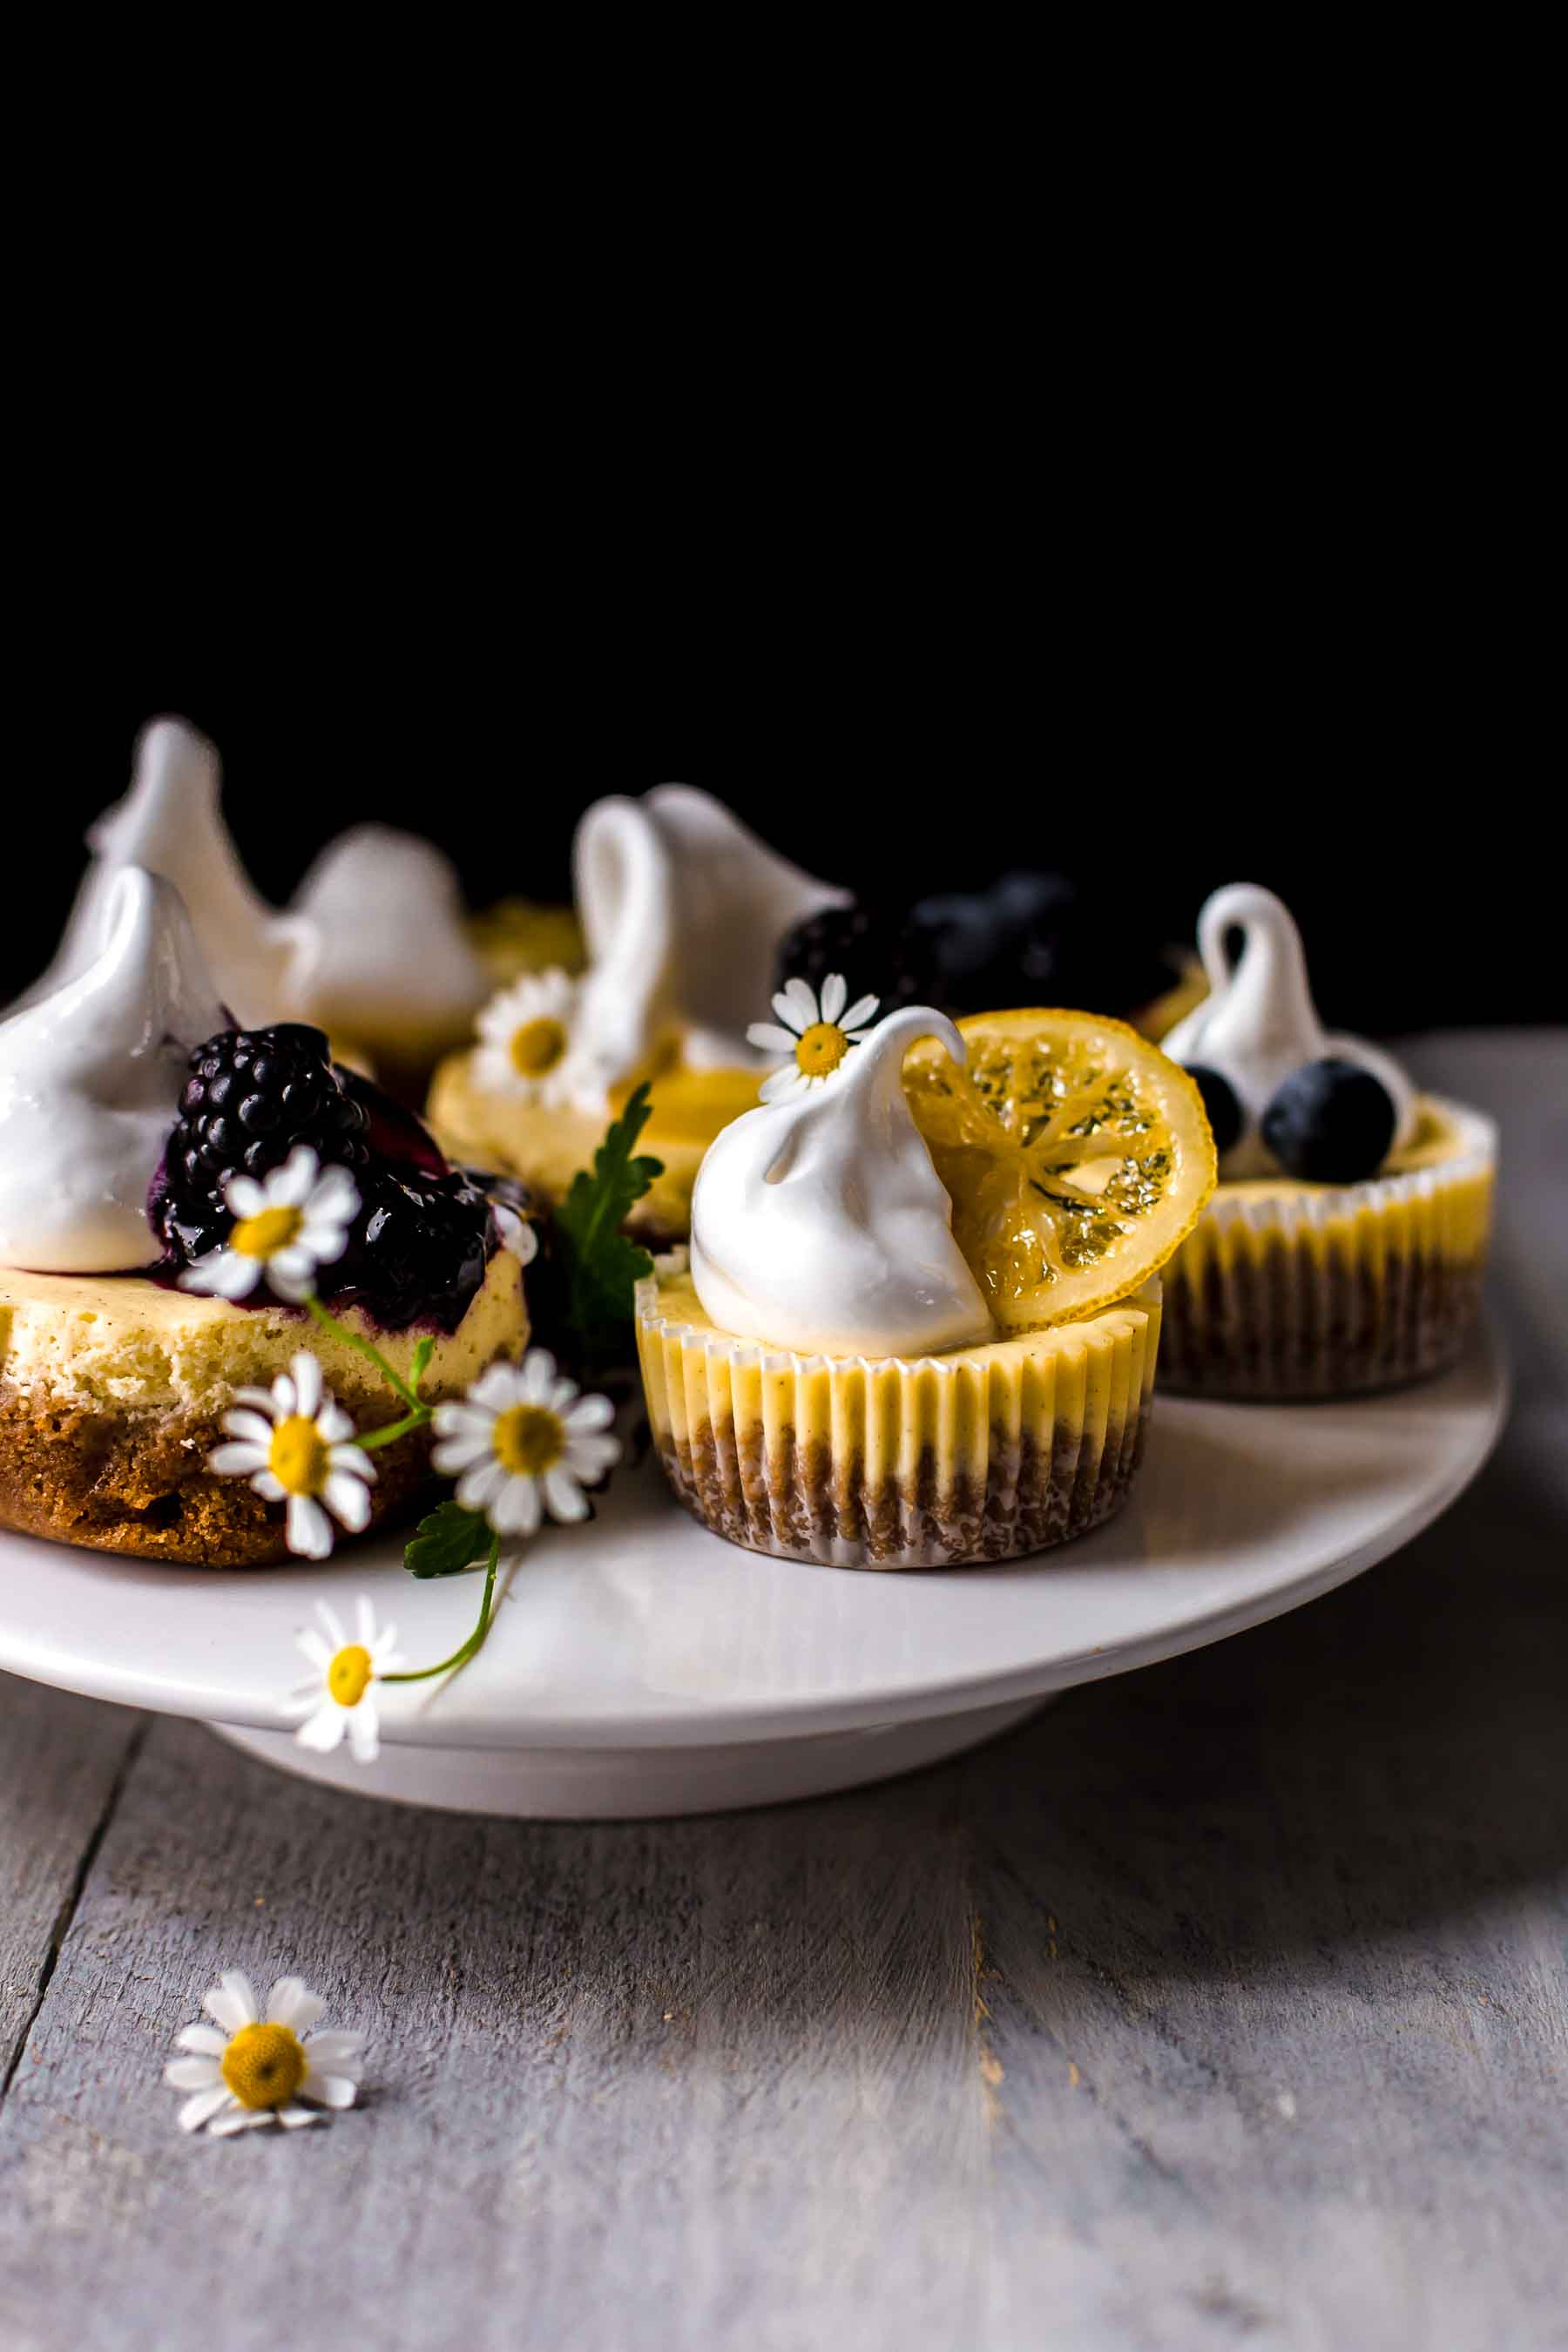 Mini Lemon Cheesecake on serving plate